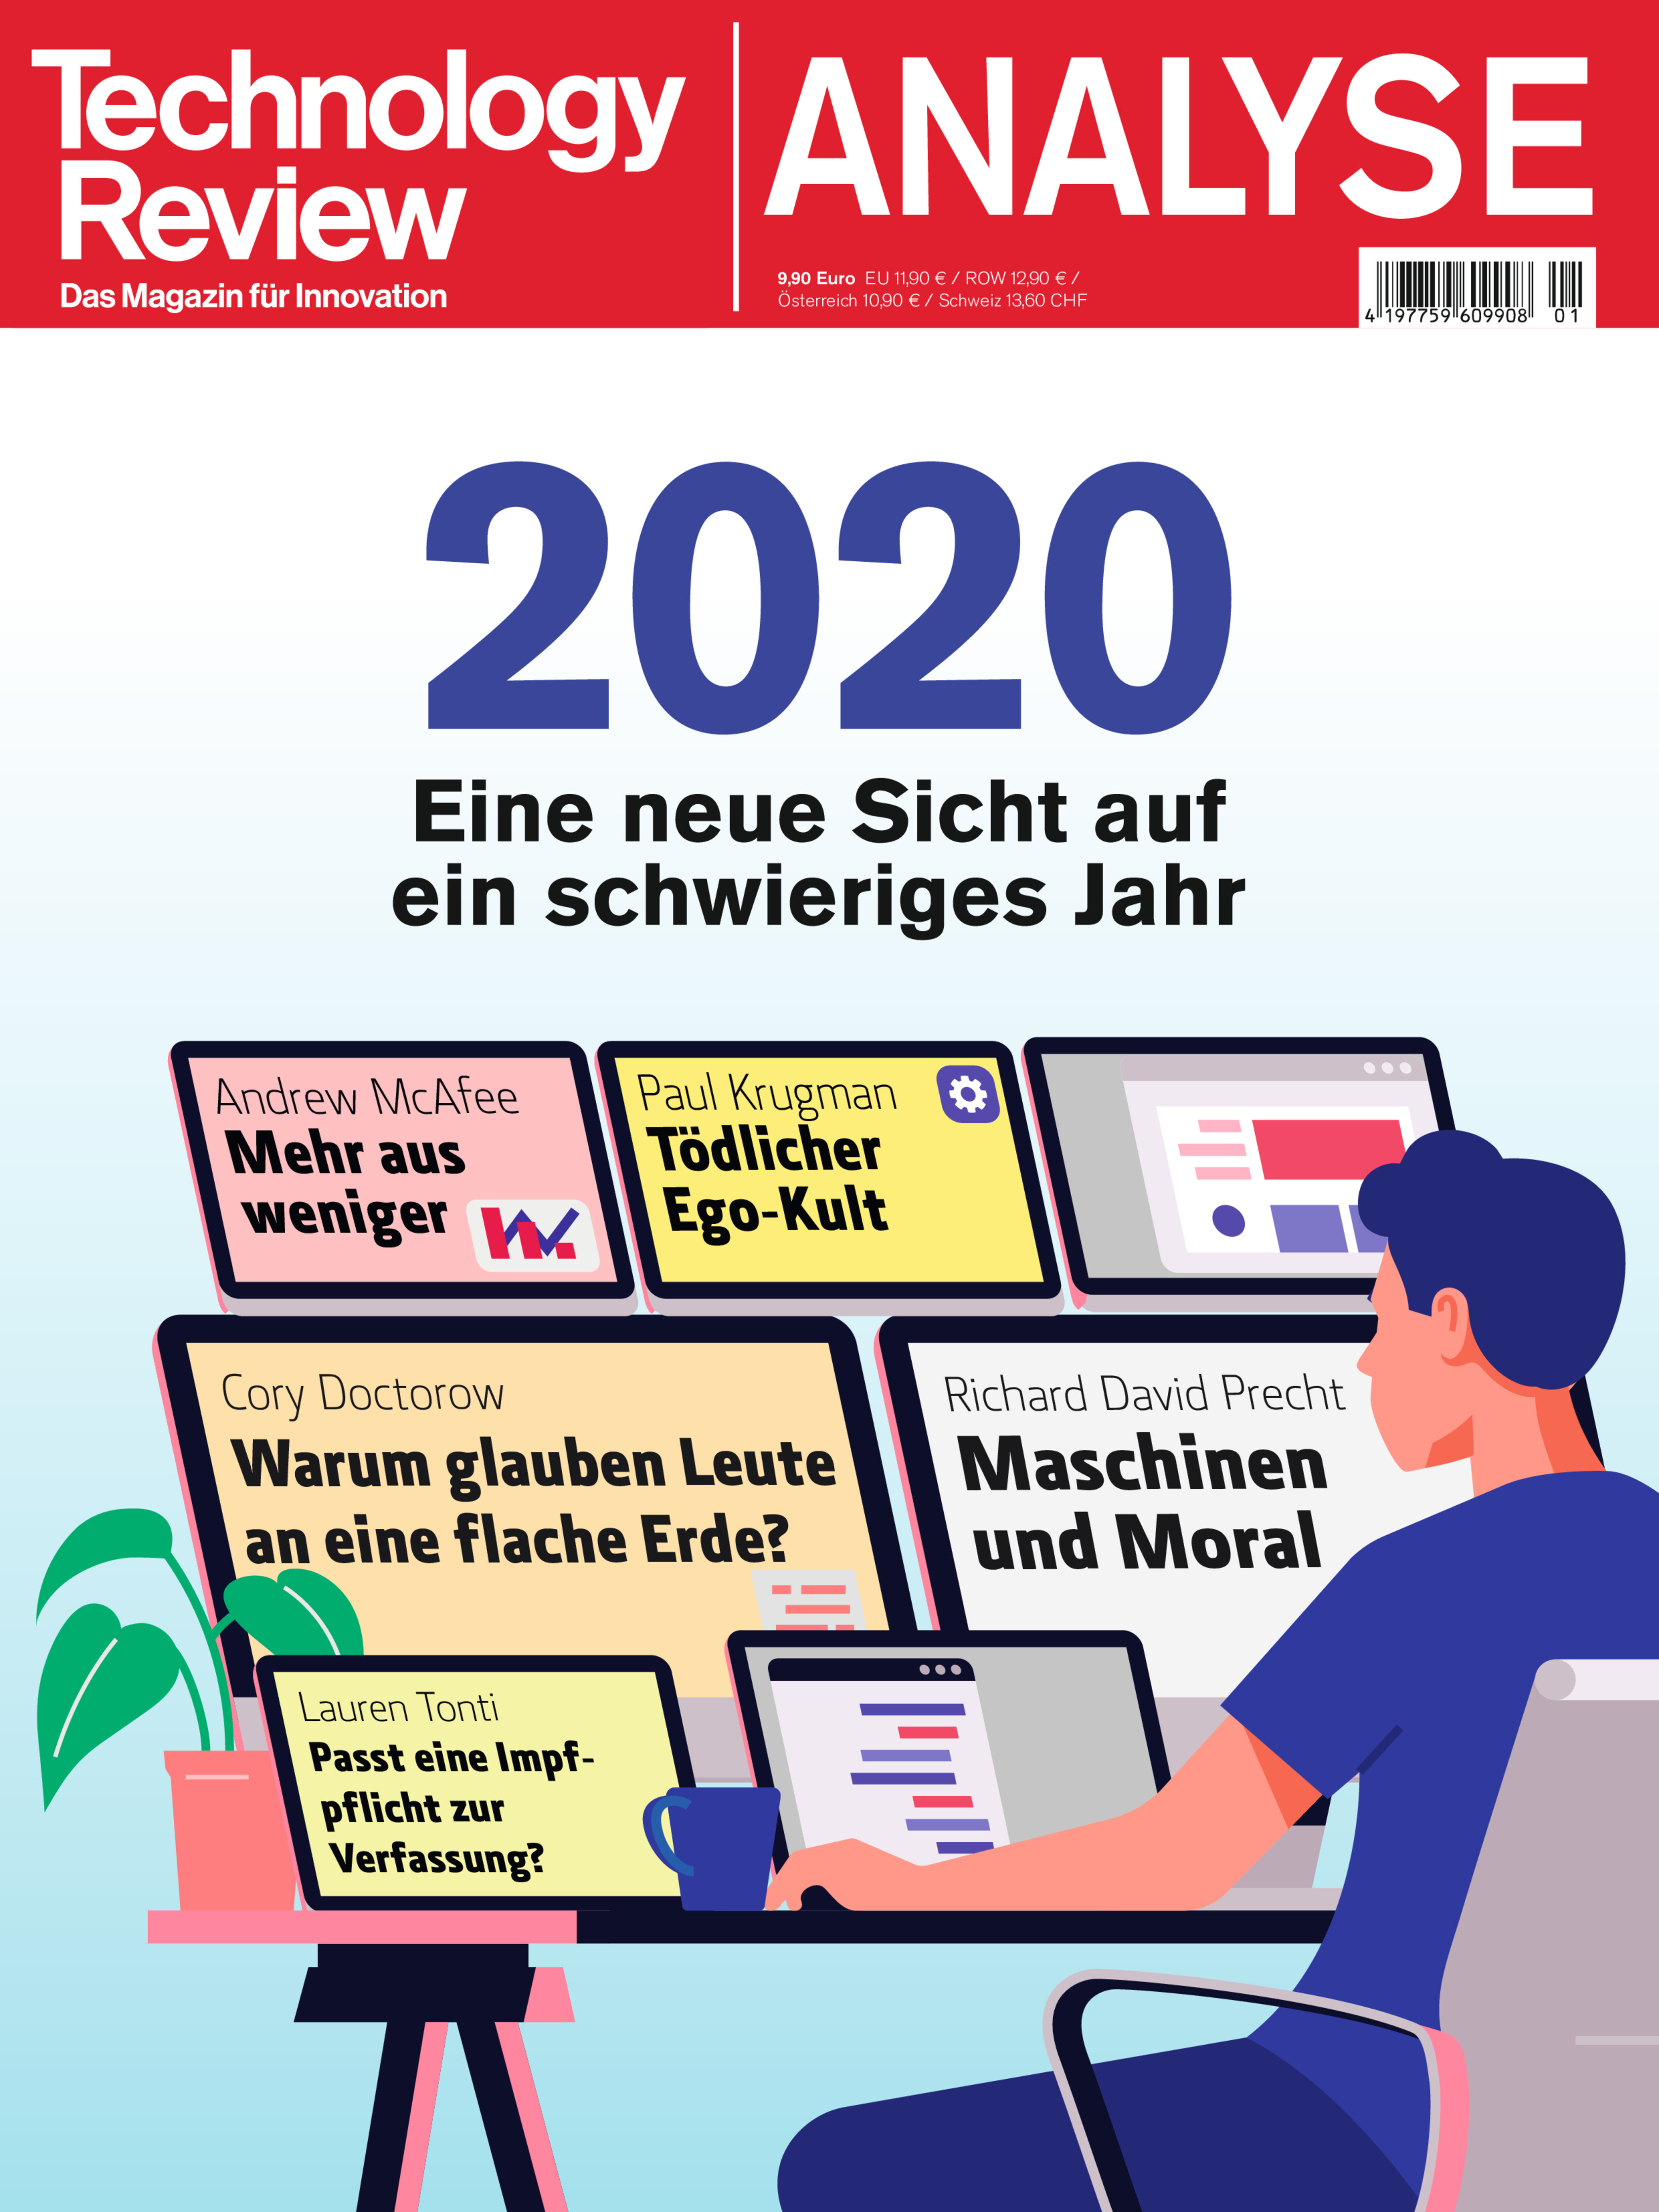 Technology Review ANALYSE 2020